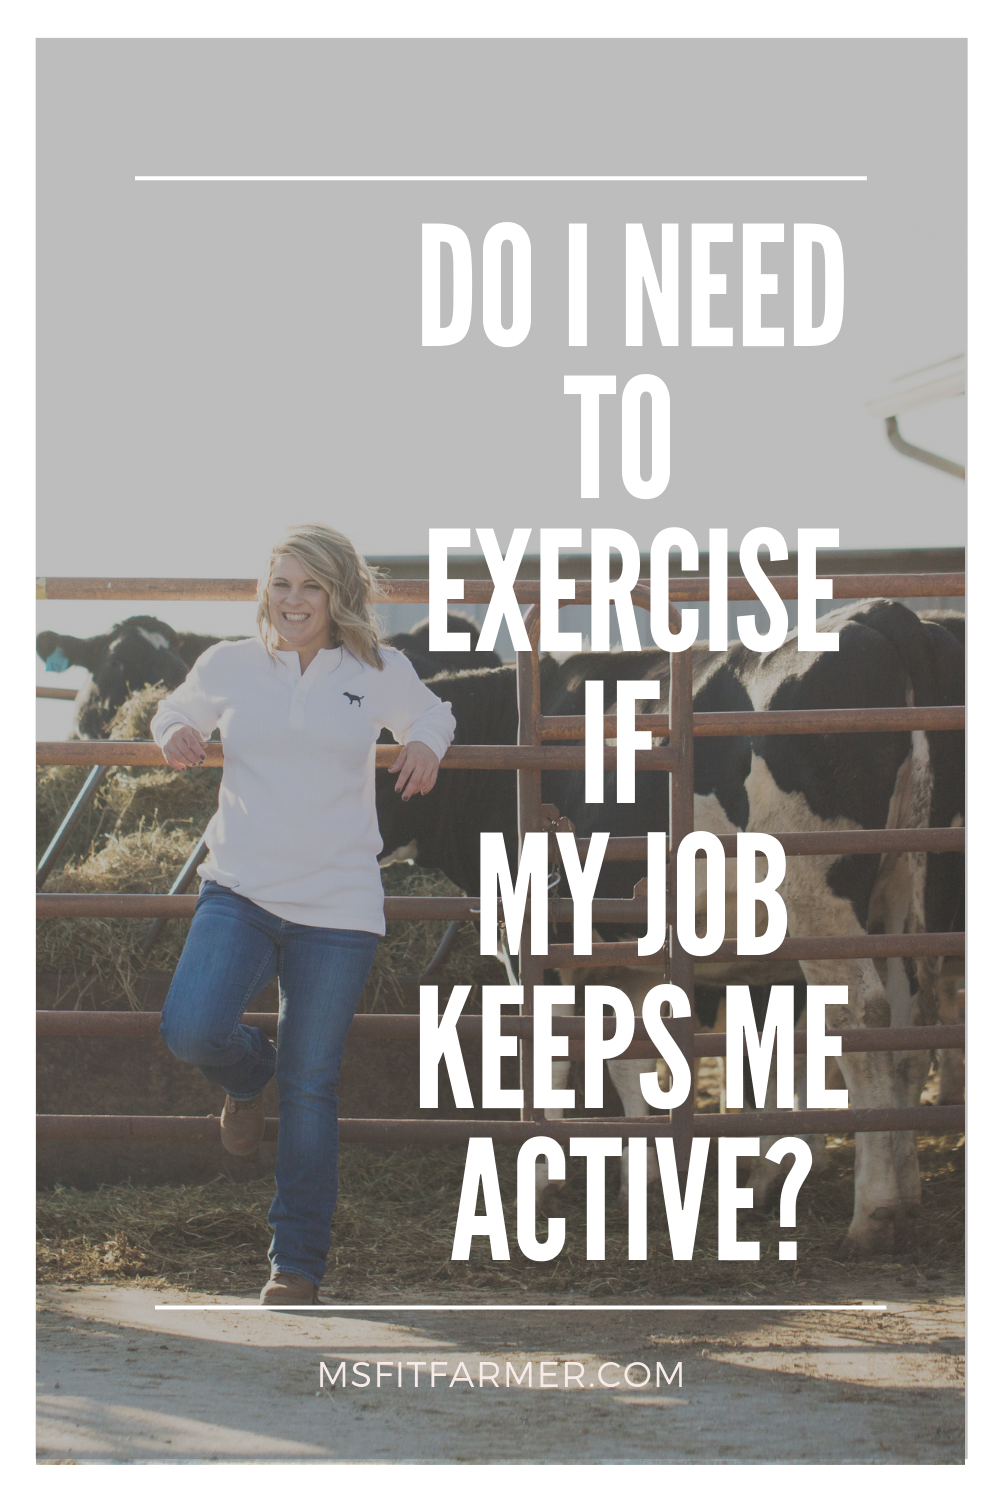 Is Exercise Necessary When I Have a Physically Active Job?